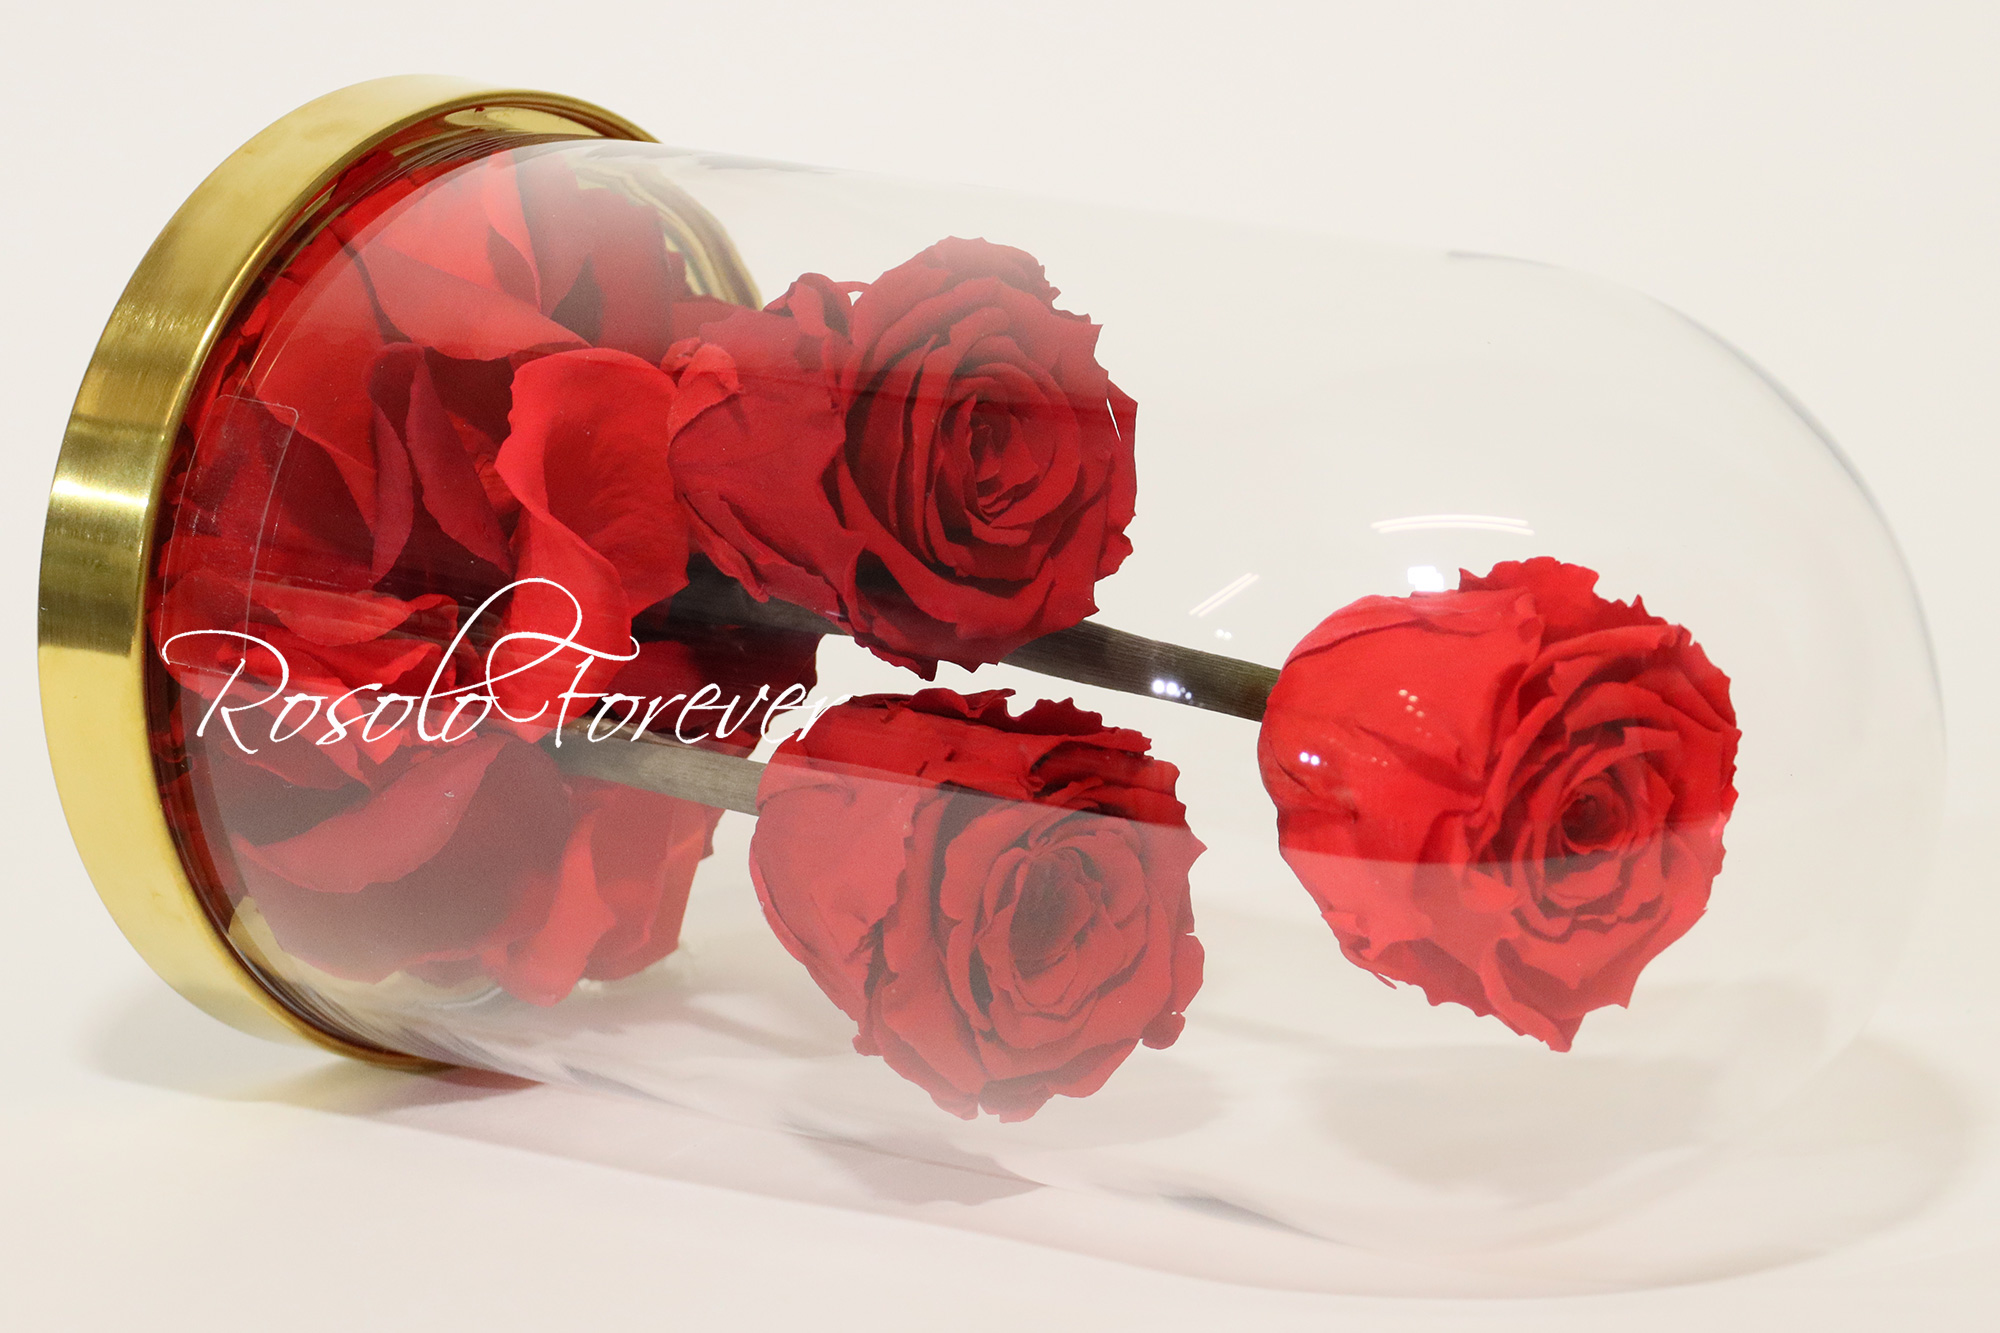 3 Roses L sous cloche CHF 135.00